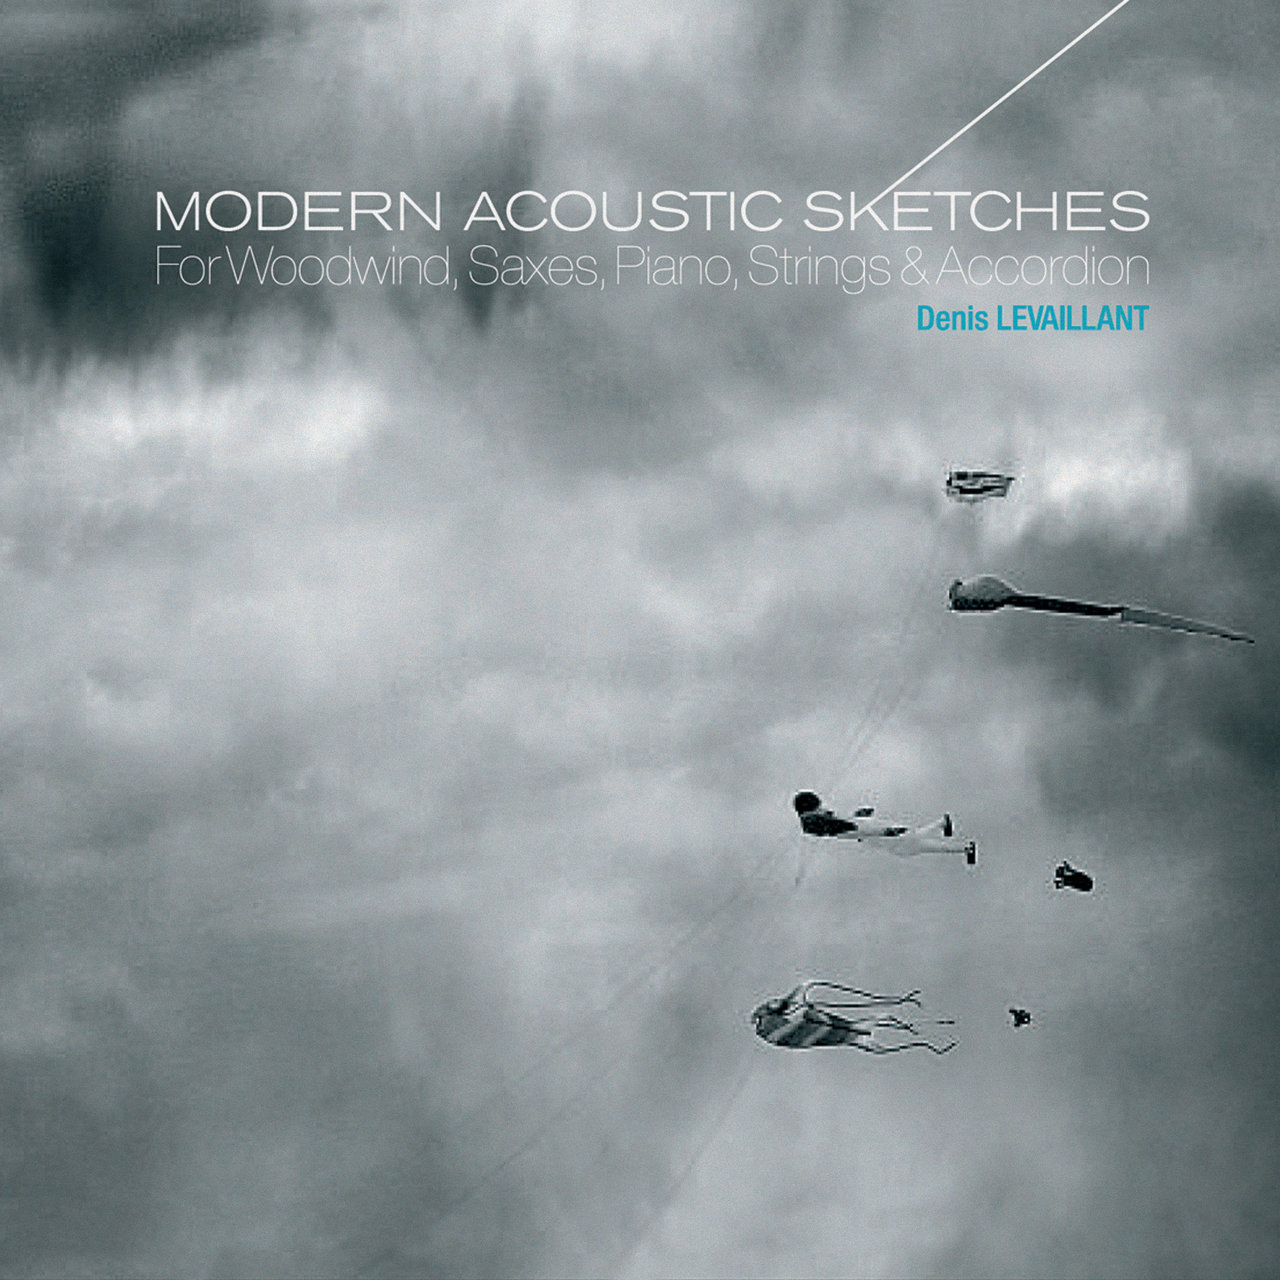 Modern Acoustic Sketches - For Woodwind, Saxes, Piano, Strings & Accordion